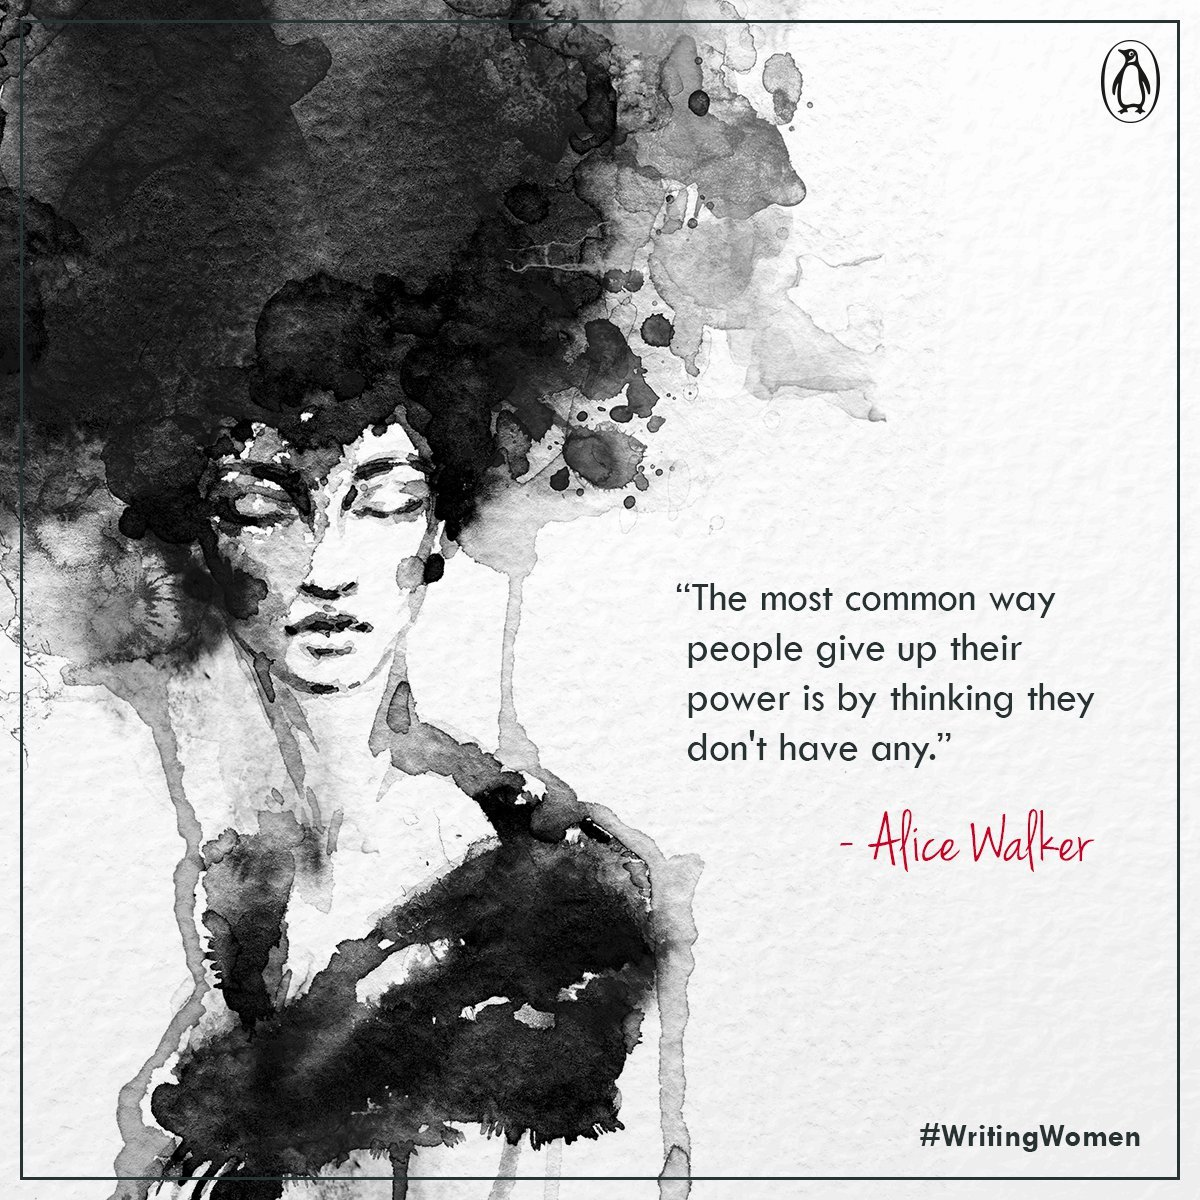 Quotes For Women 8 Quotes From Literature That Show The World From A Woman's